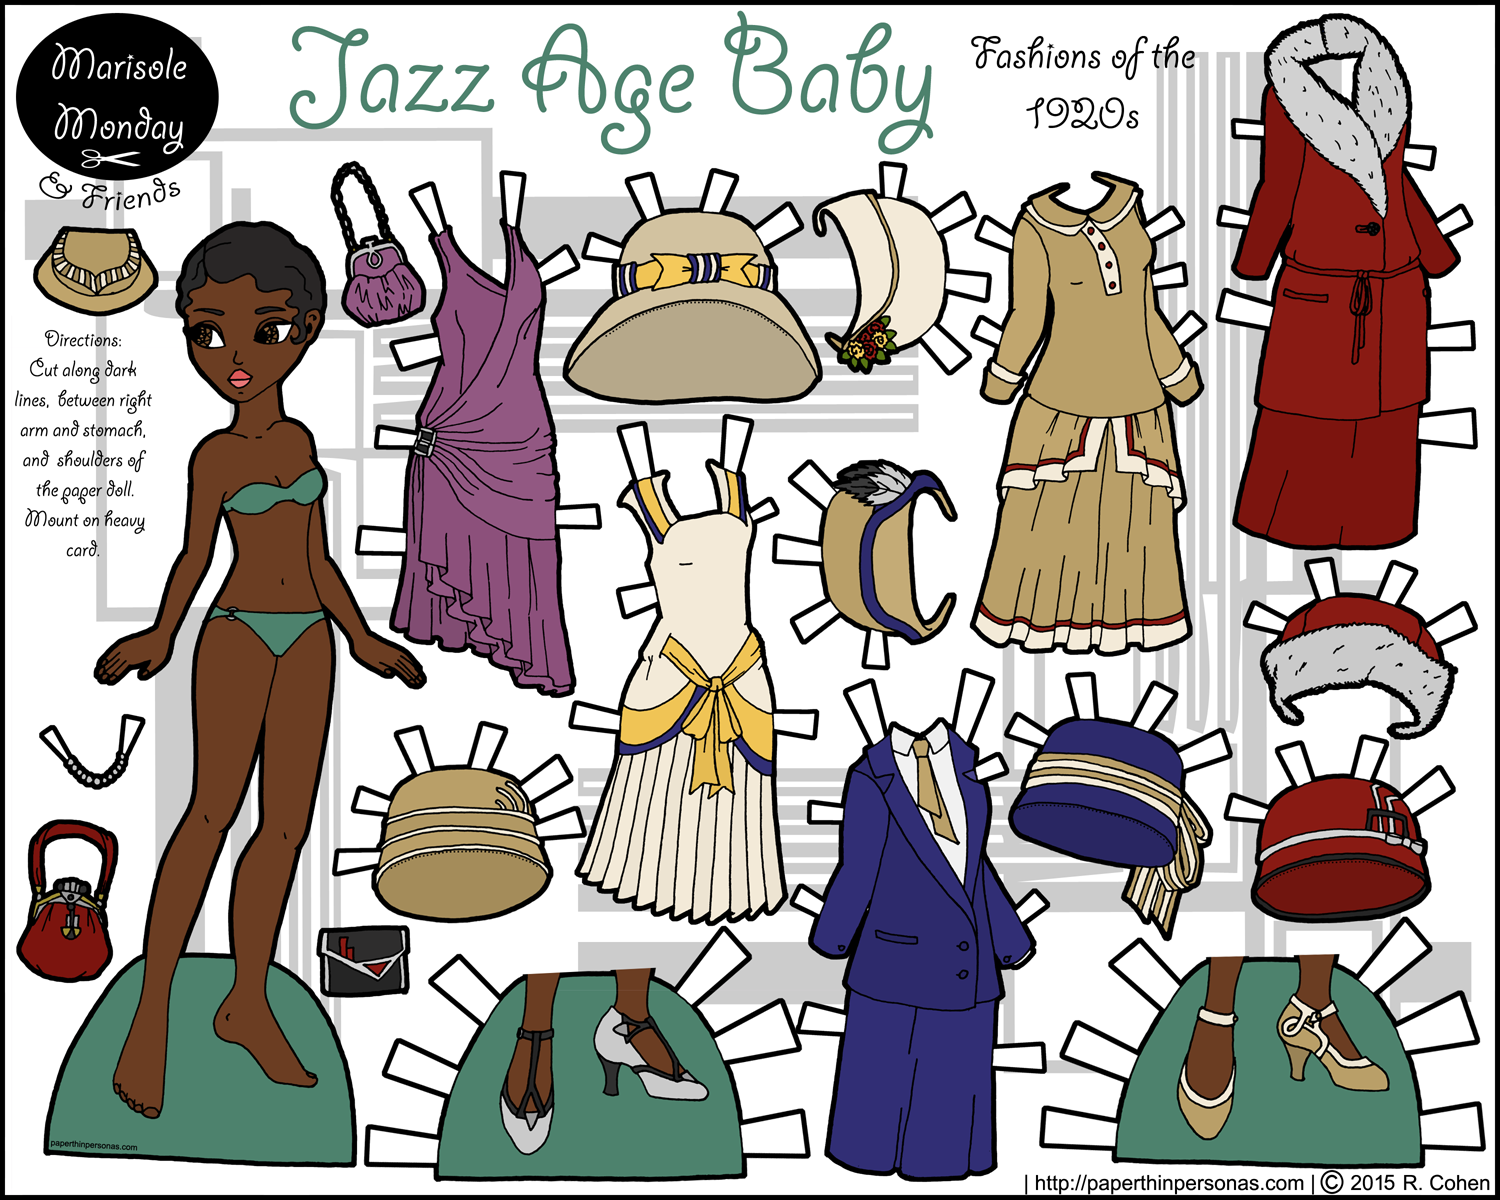 jazz in the 1920s term papers